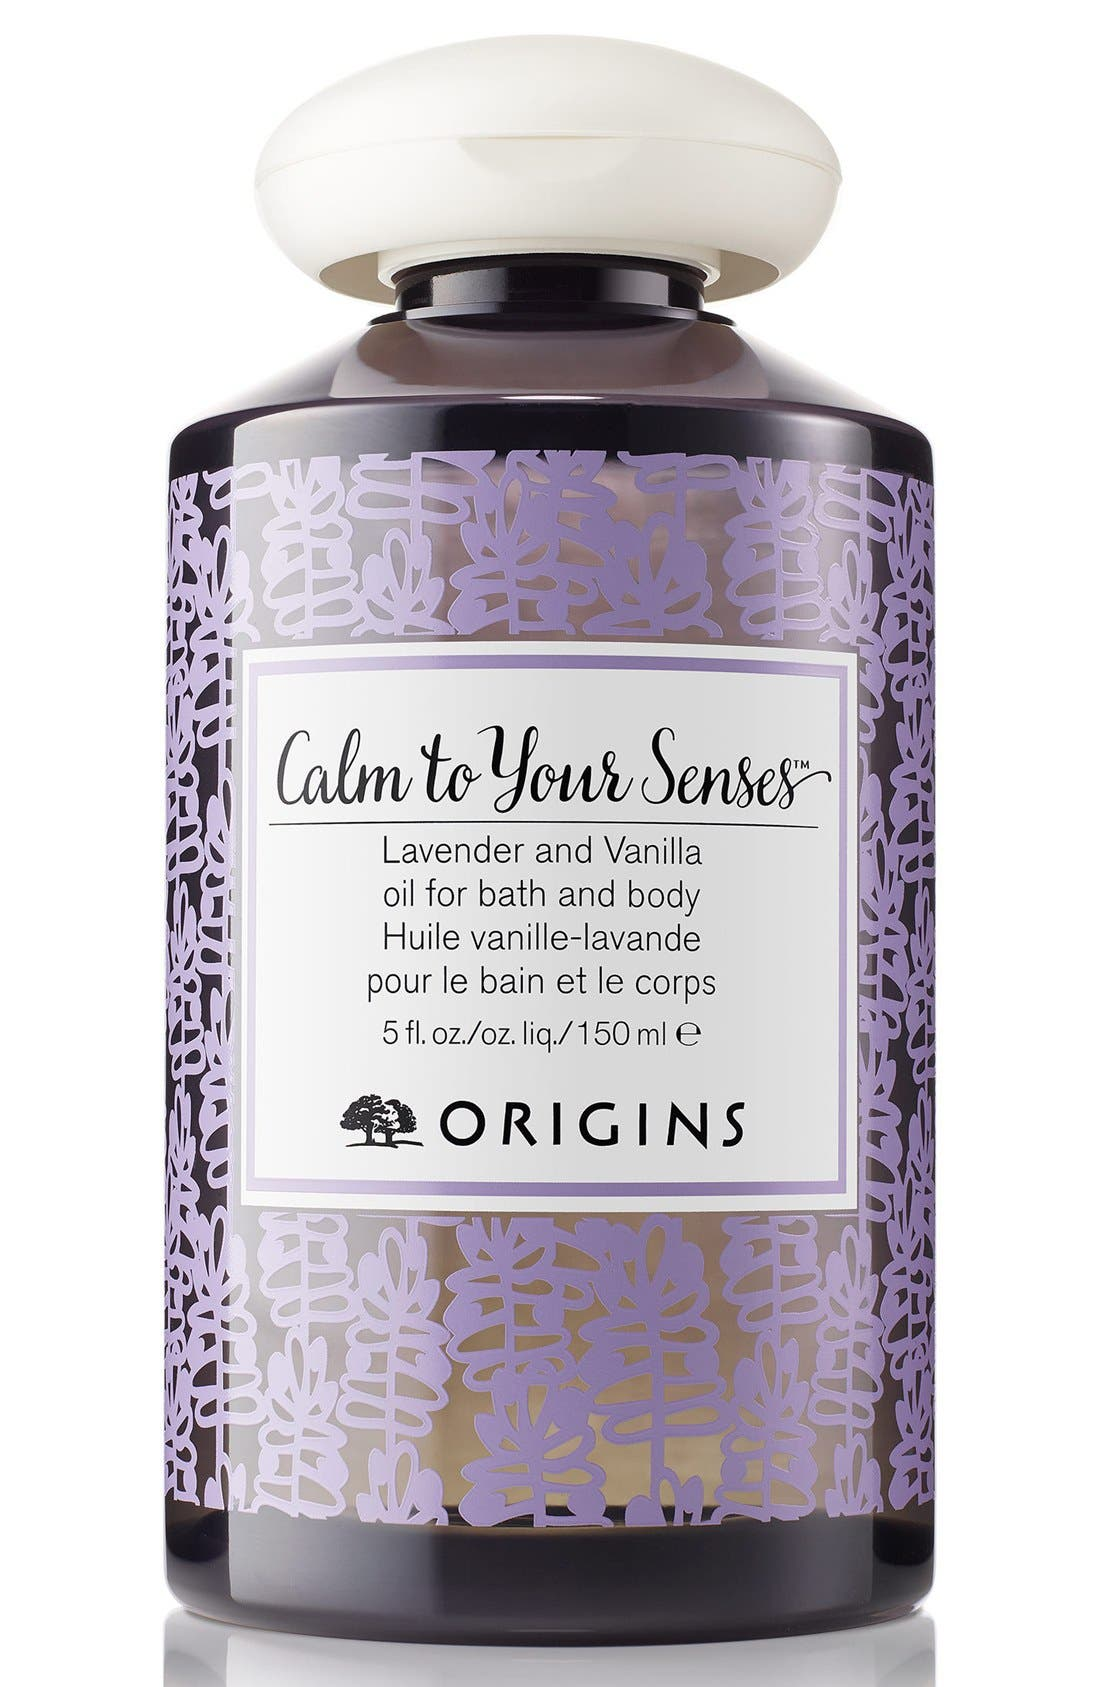 Origins Calm To Your Senses™ Lavender and Vanilla Oil for Bath and Body